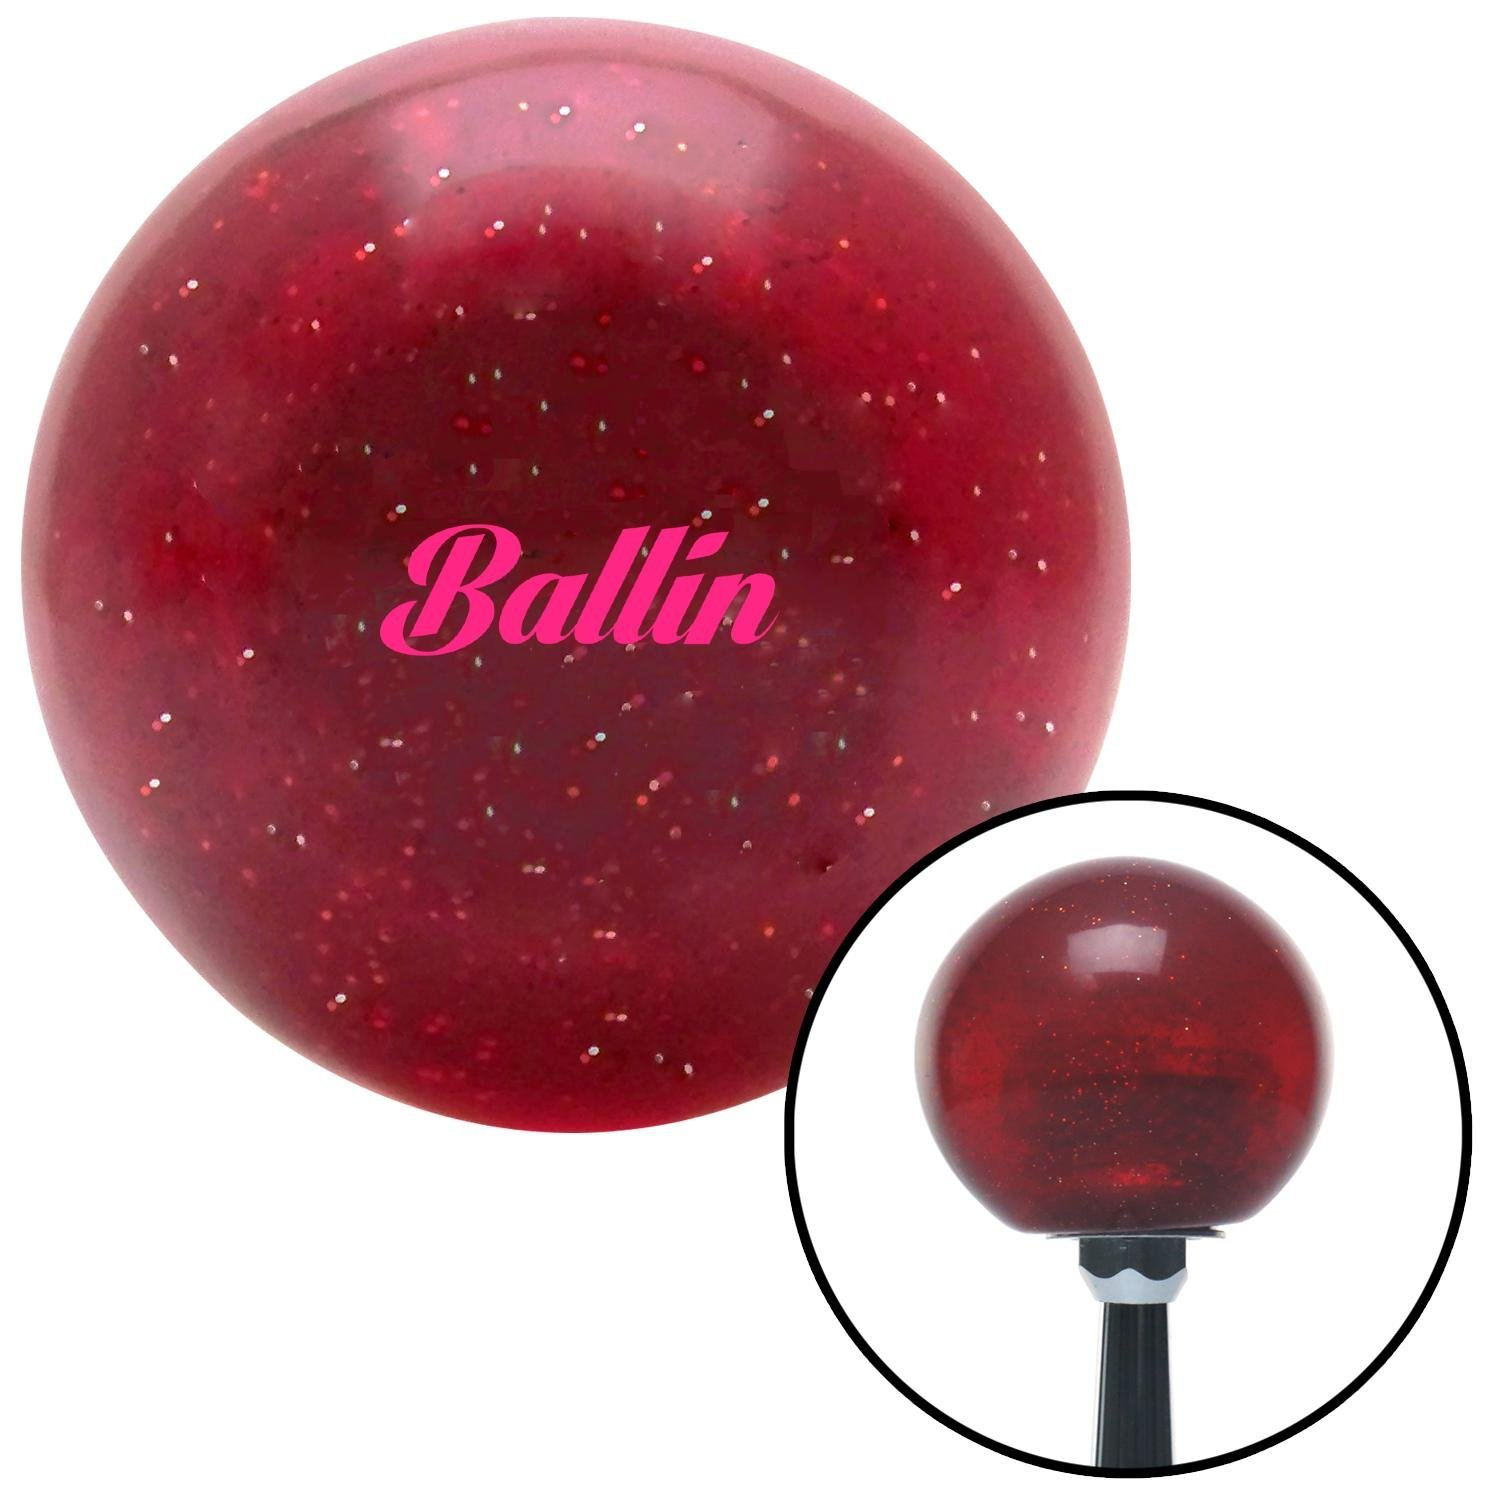 American Shifter 282901 Shift Knob Pink Ballin Red Metal Flake with M16 x 1.5 Insert